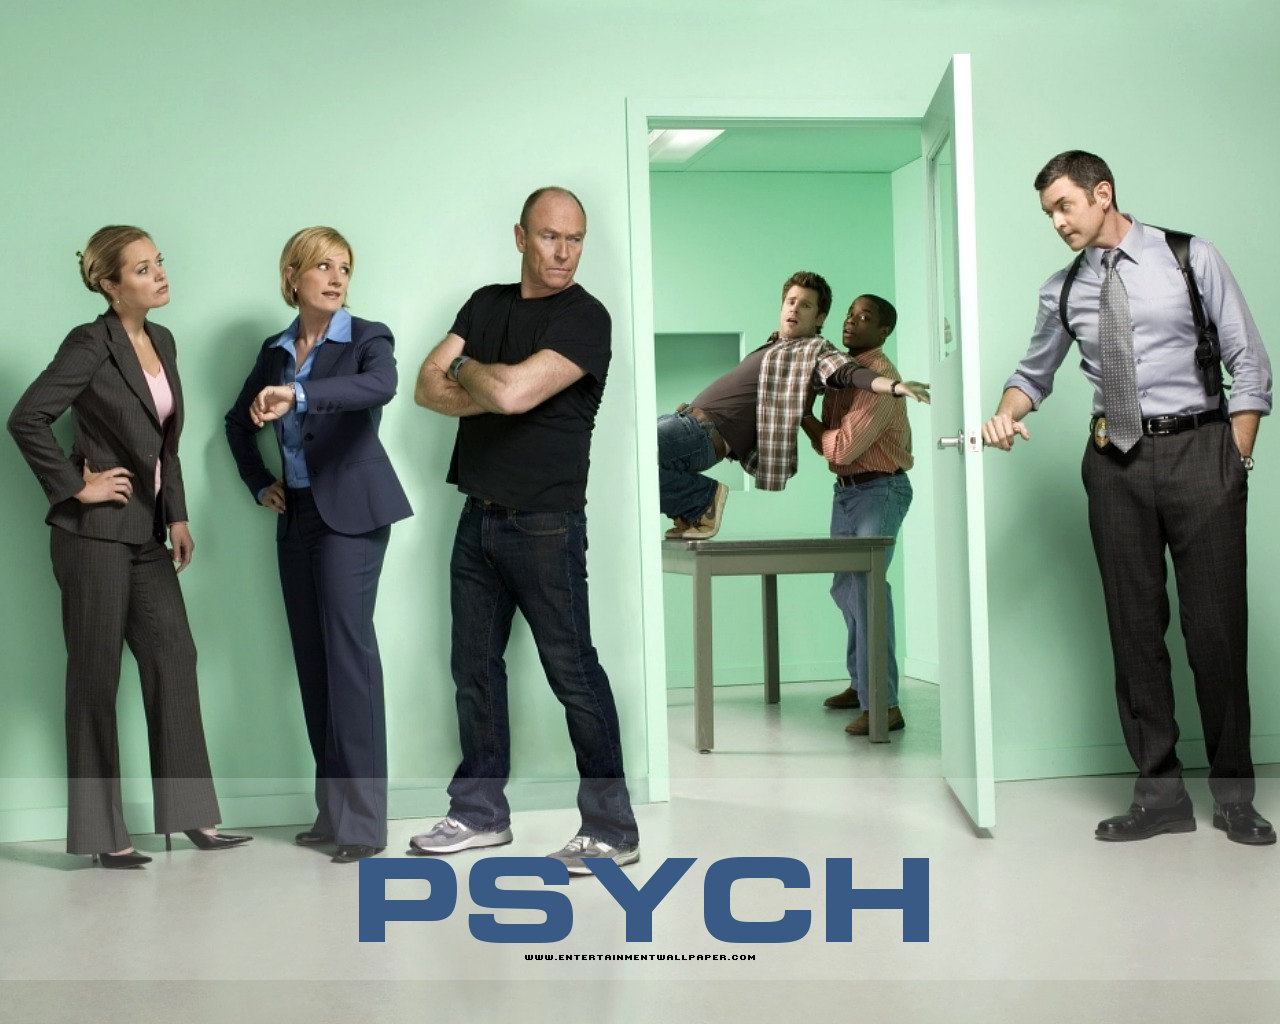 psych images psych hd wallpaper and background photos 31530076